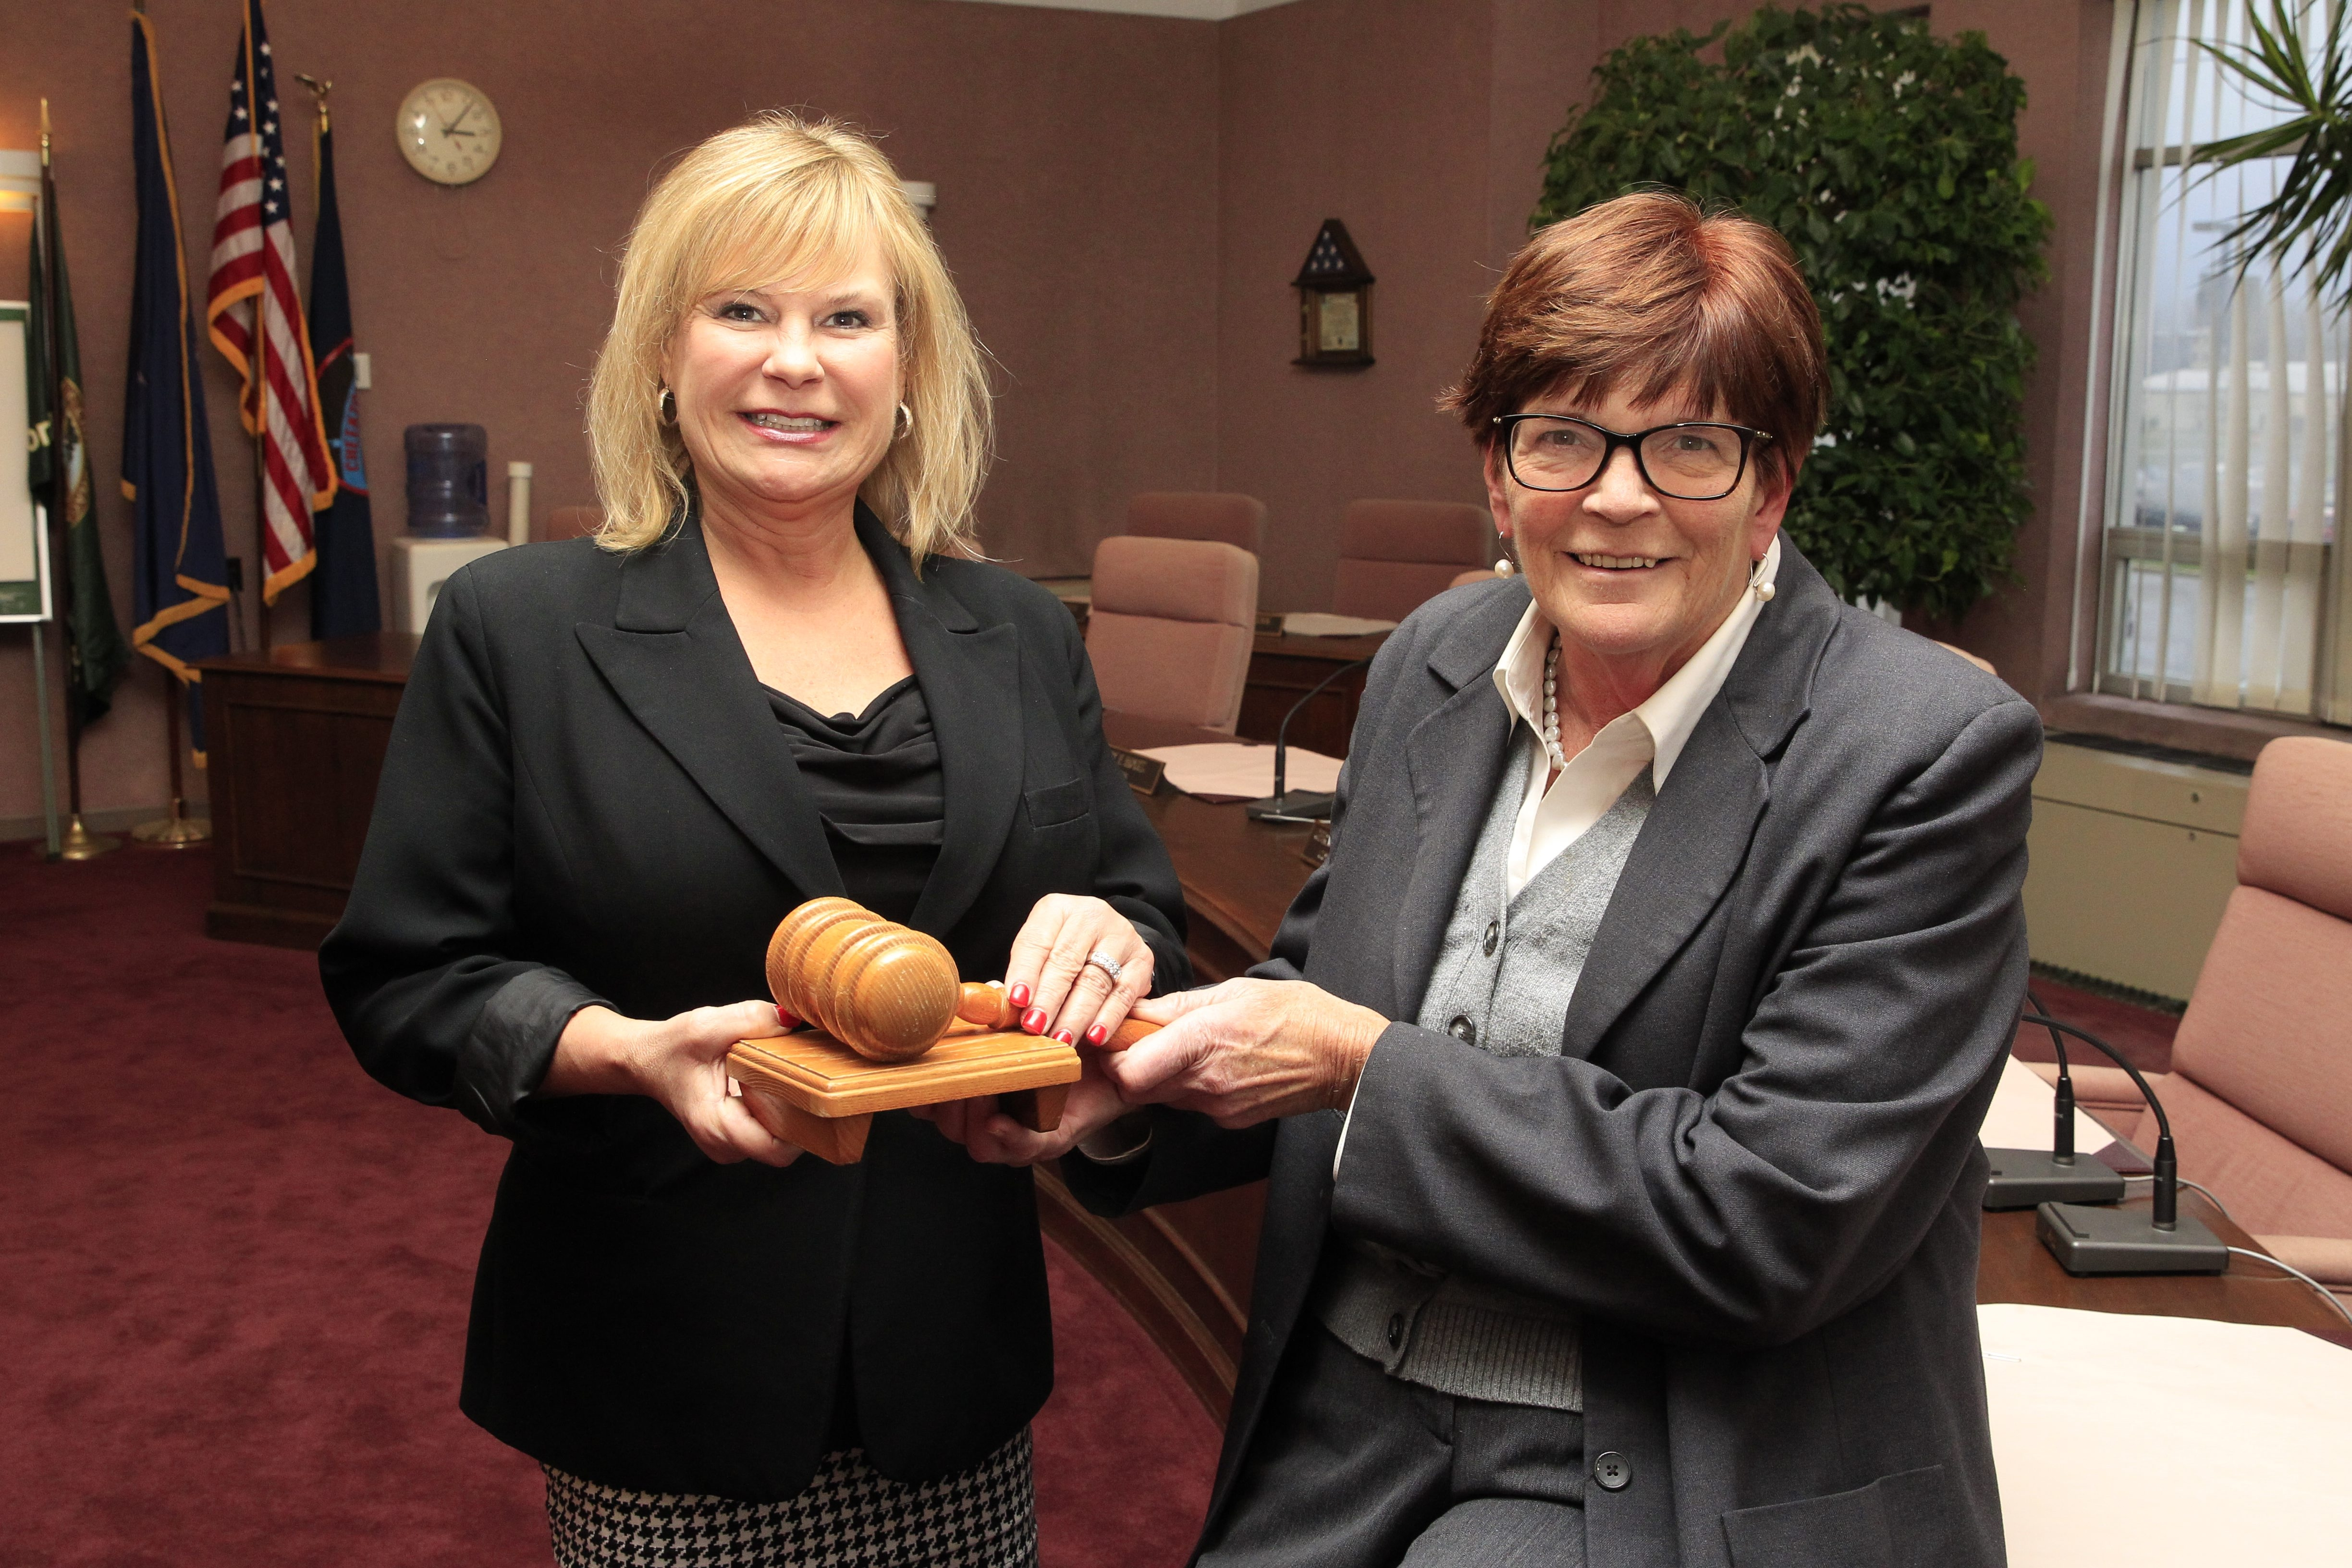 Diane M. Benczkowski, left, who will take over the Cheektowaga supervisor post from Mary F. Holtz on Friday, says she is ready to face the challenges the position presents.